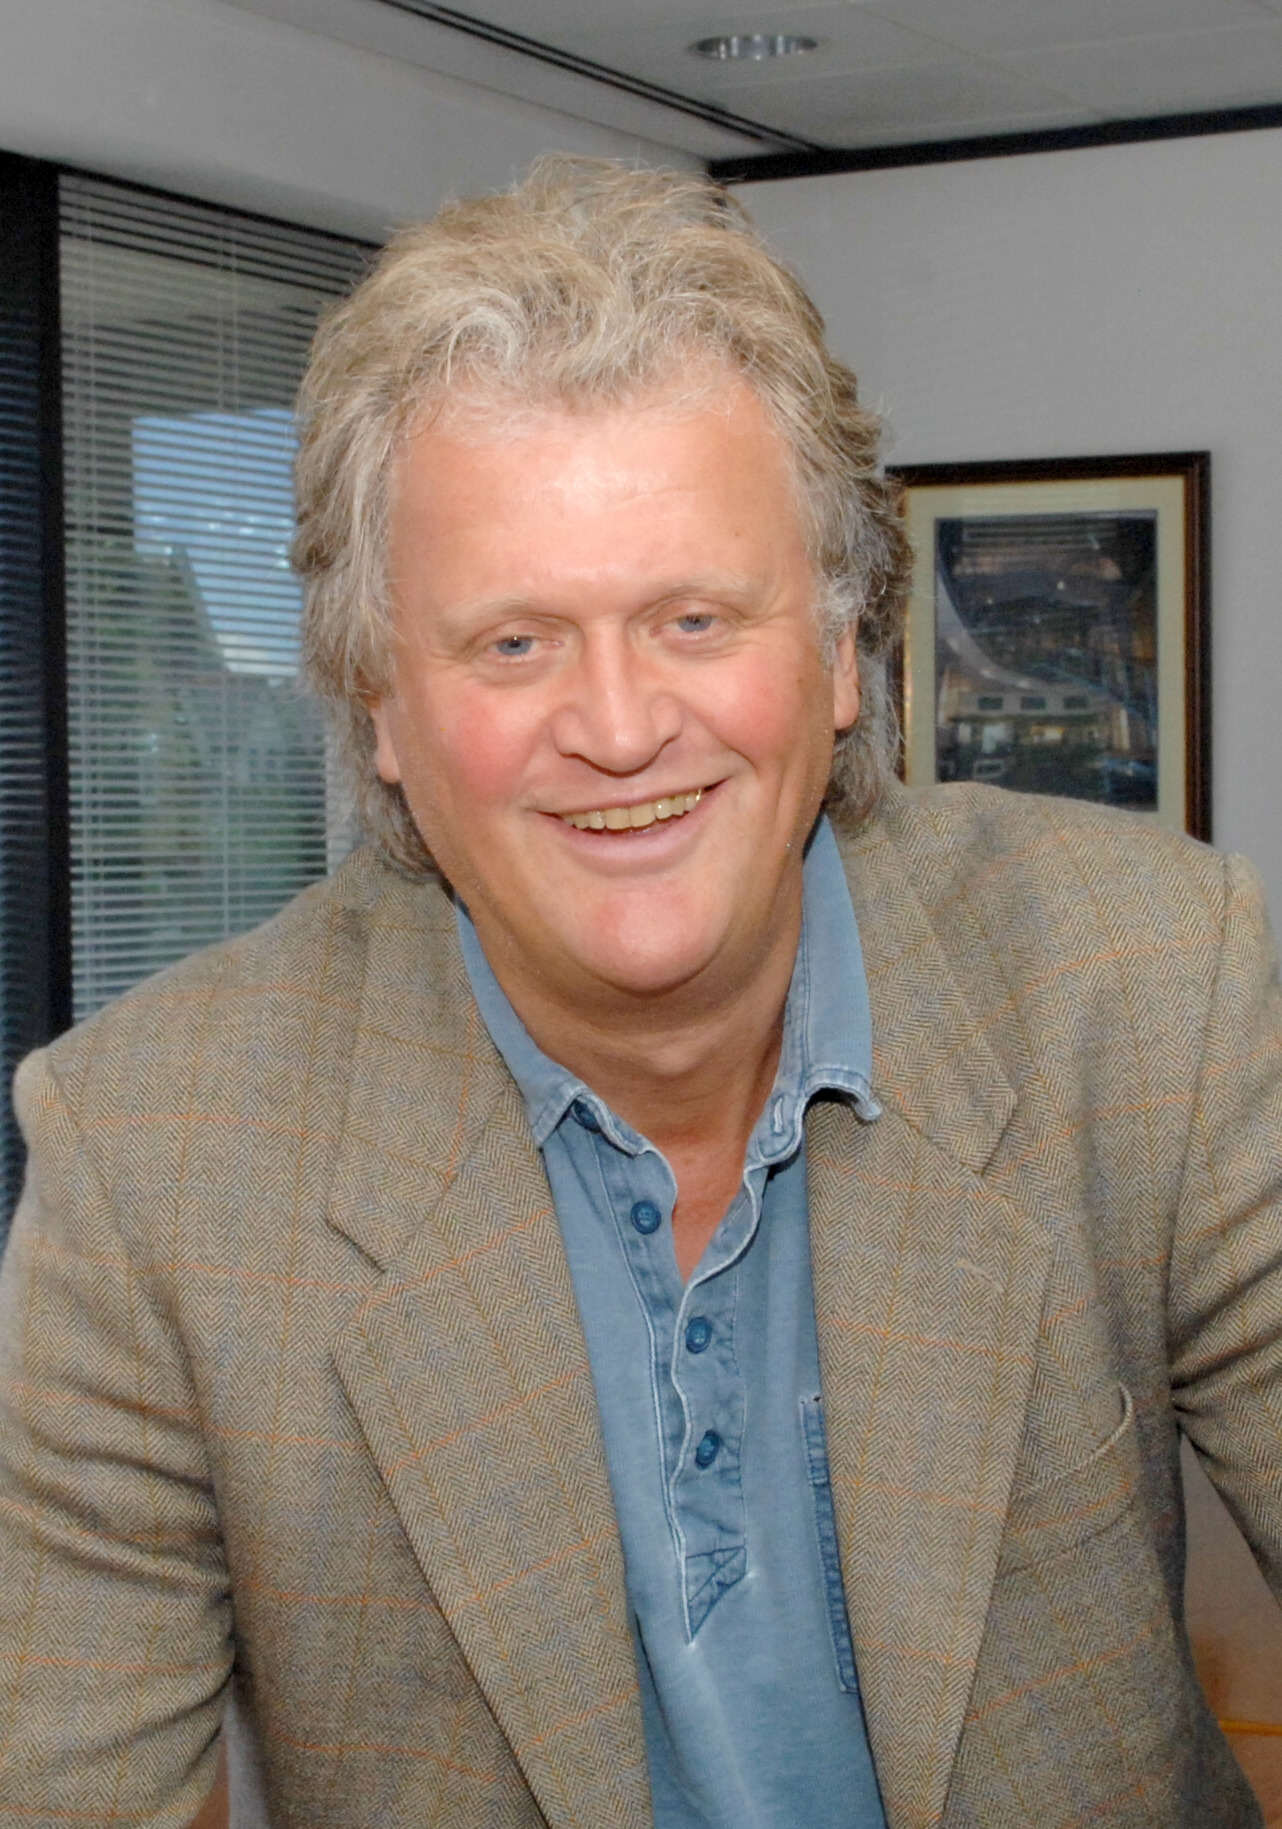 Brexit Supporting Wetherspoons Founder Lost Sh*t Ton Of Money After Leave Vote wetherspoon3